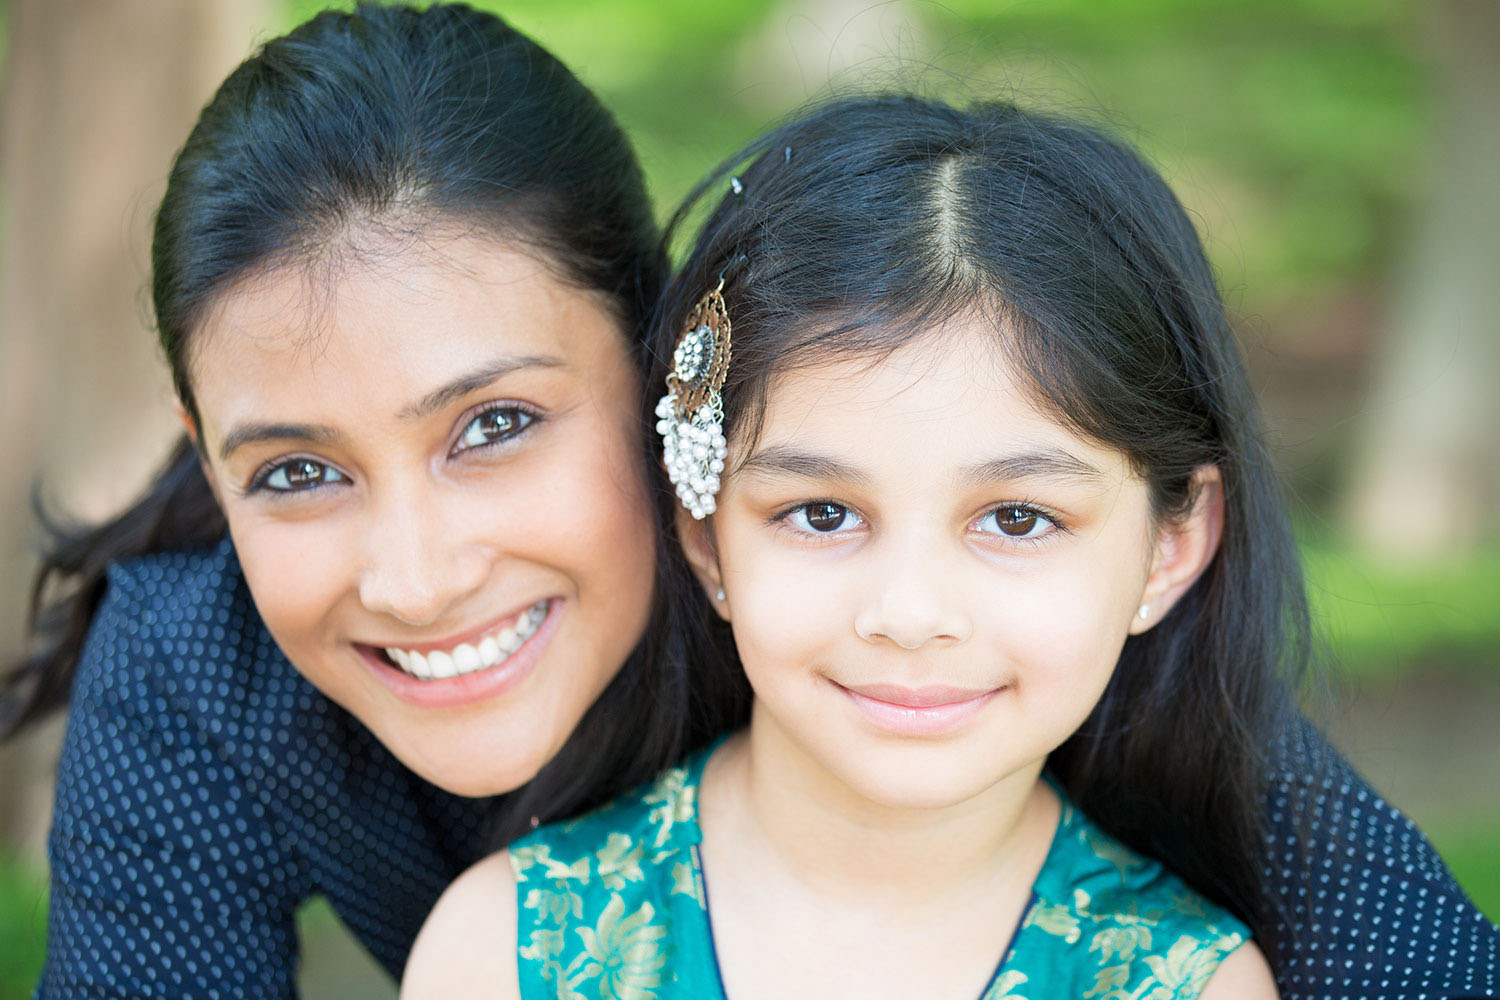 image shows a happy Latina mother and her daughter